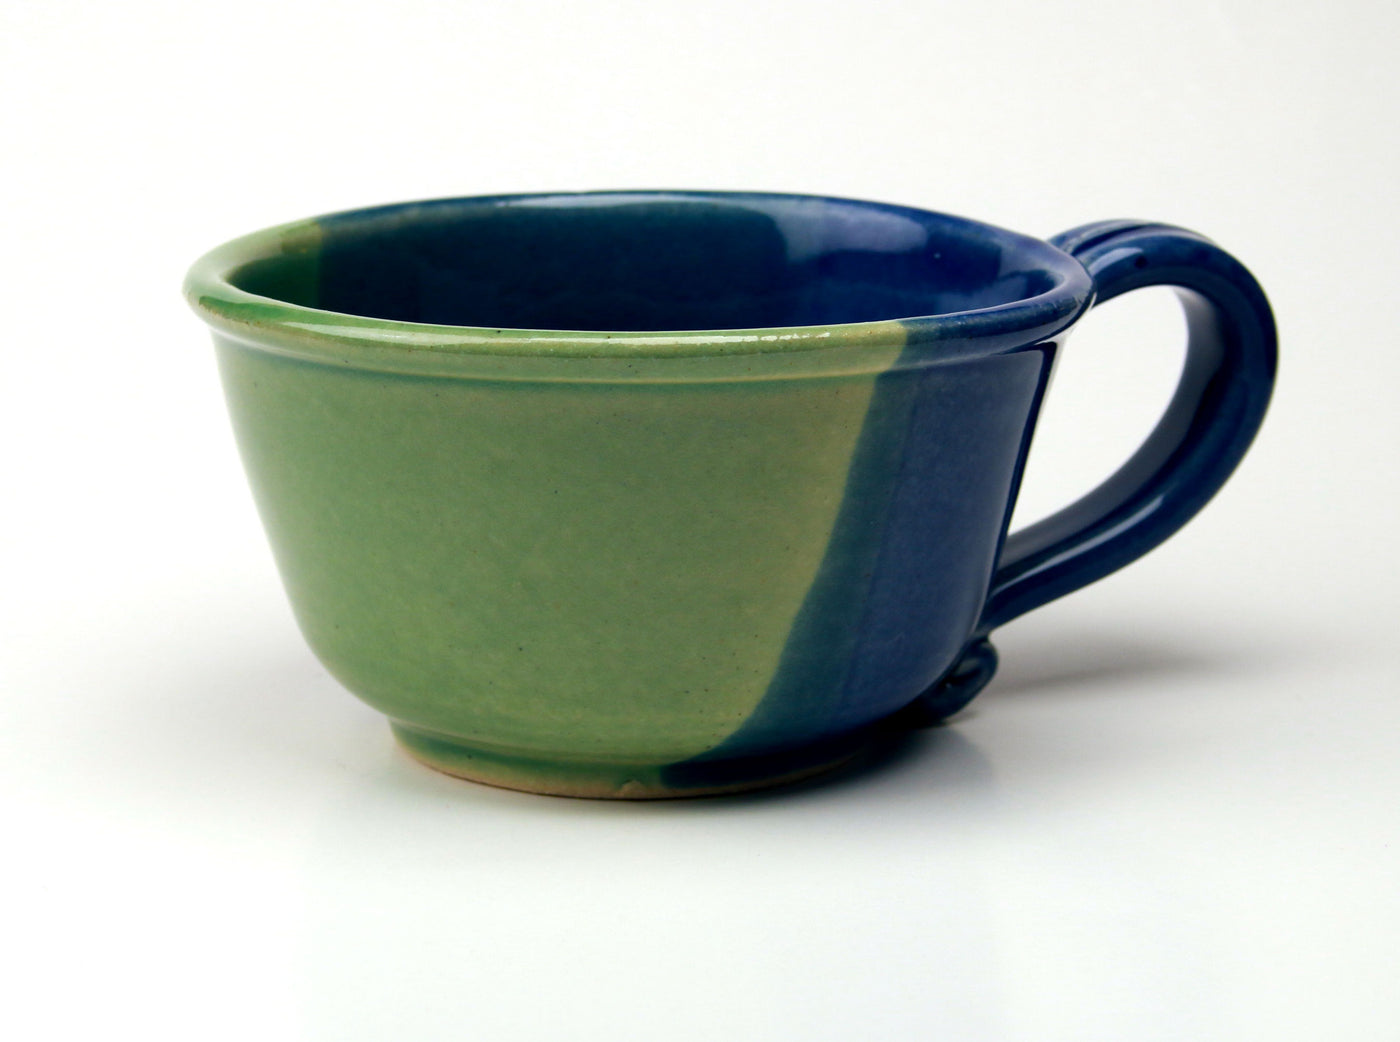 Chowder Mug - Duotone Glaze - Sea Green and Cobalt